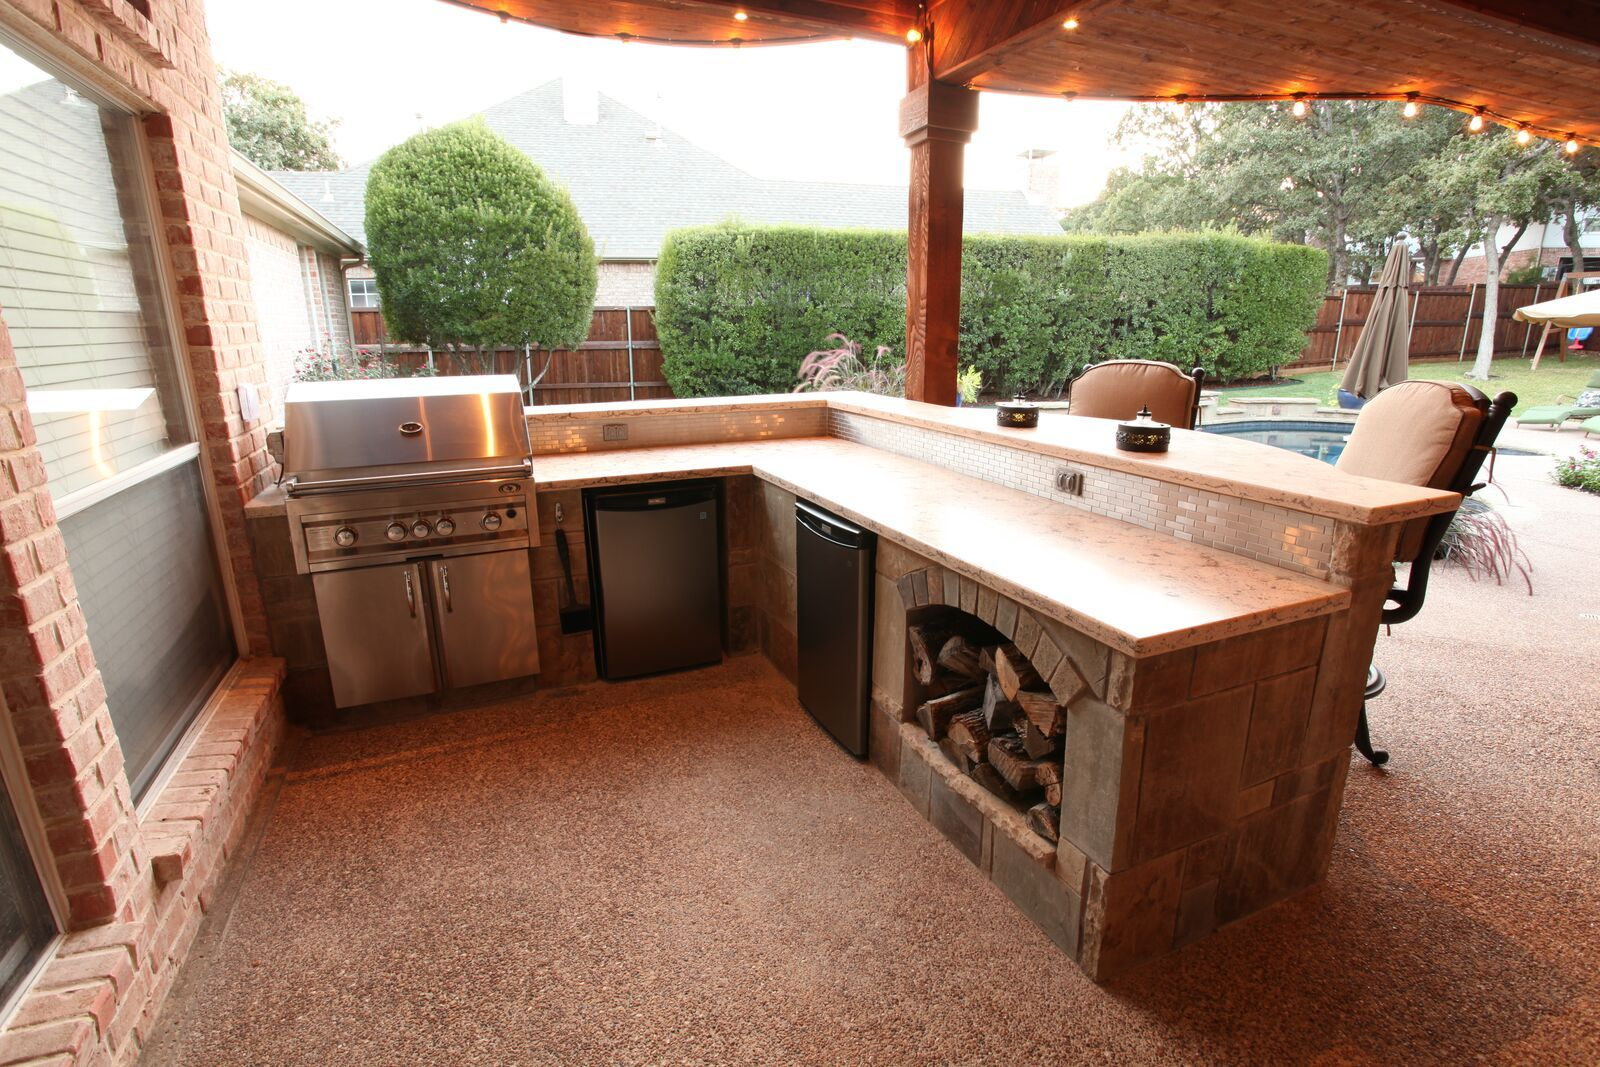 A great l shaped outdoor kitchen with storage for firewood a bar